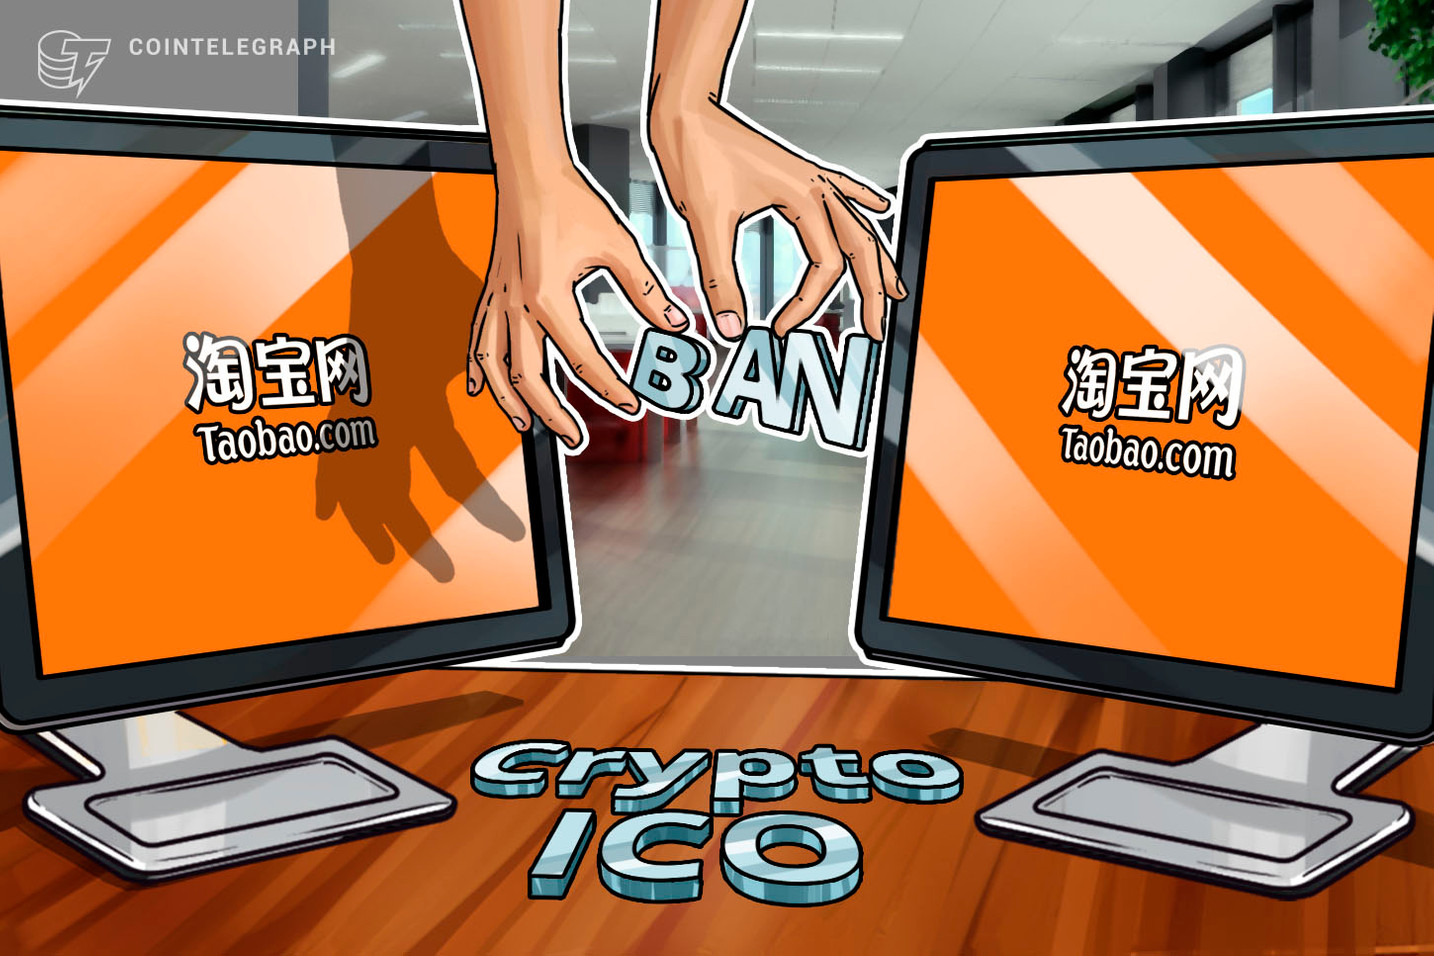 Alibaba's Taobao Expands Crypto Regulations By Banning ICOs And Associated Services